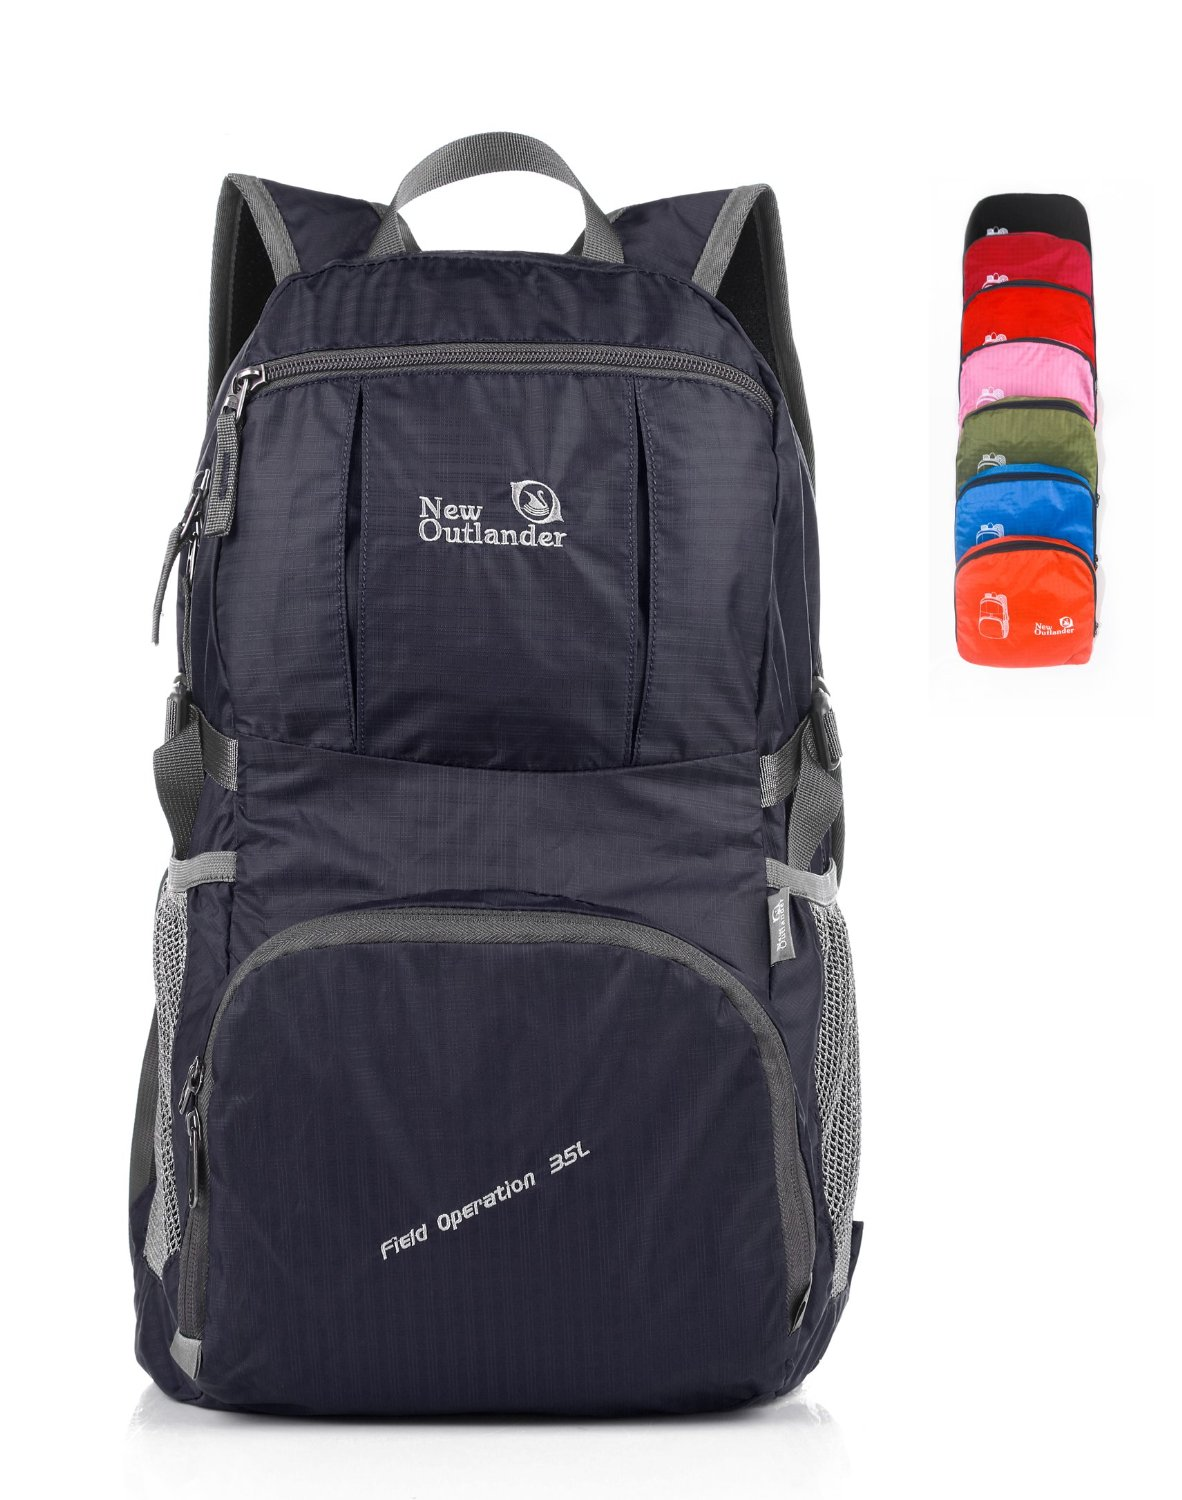 Lightweight Travel Backpack CkaTbEeg